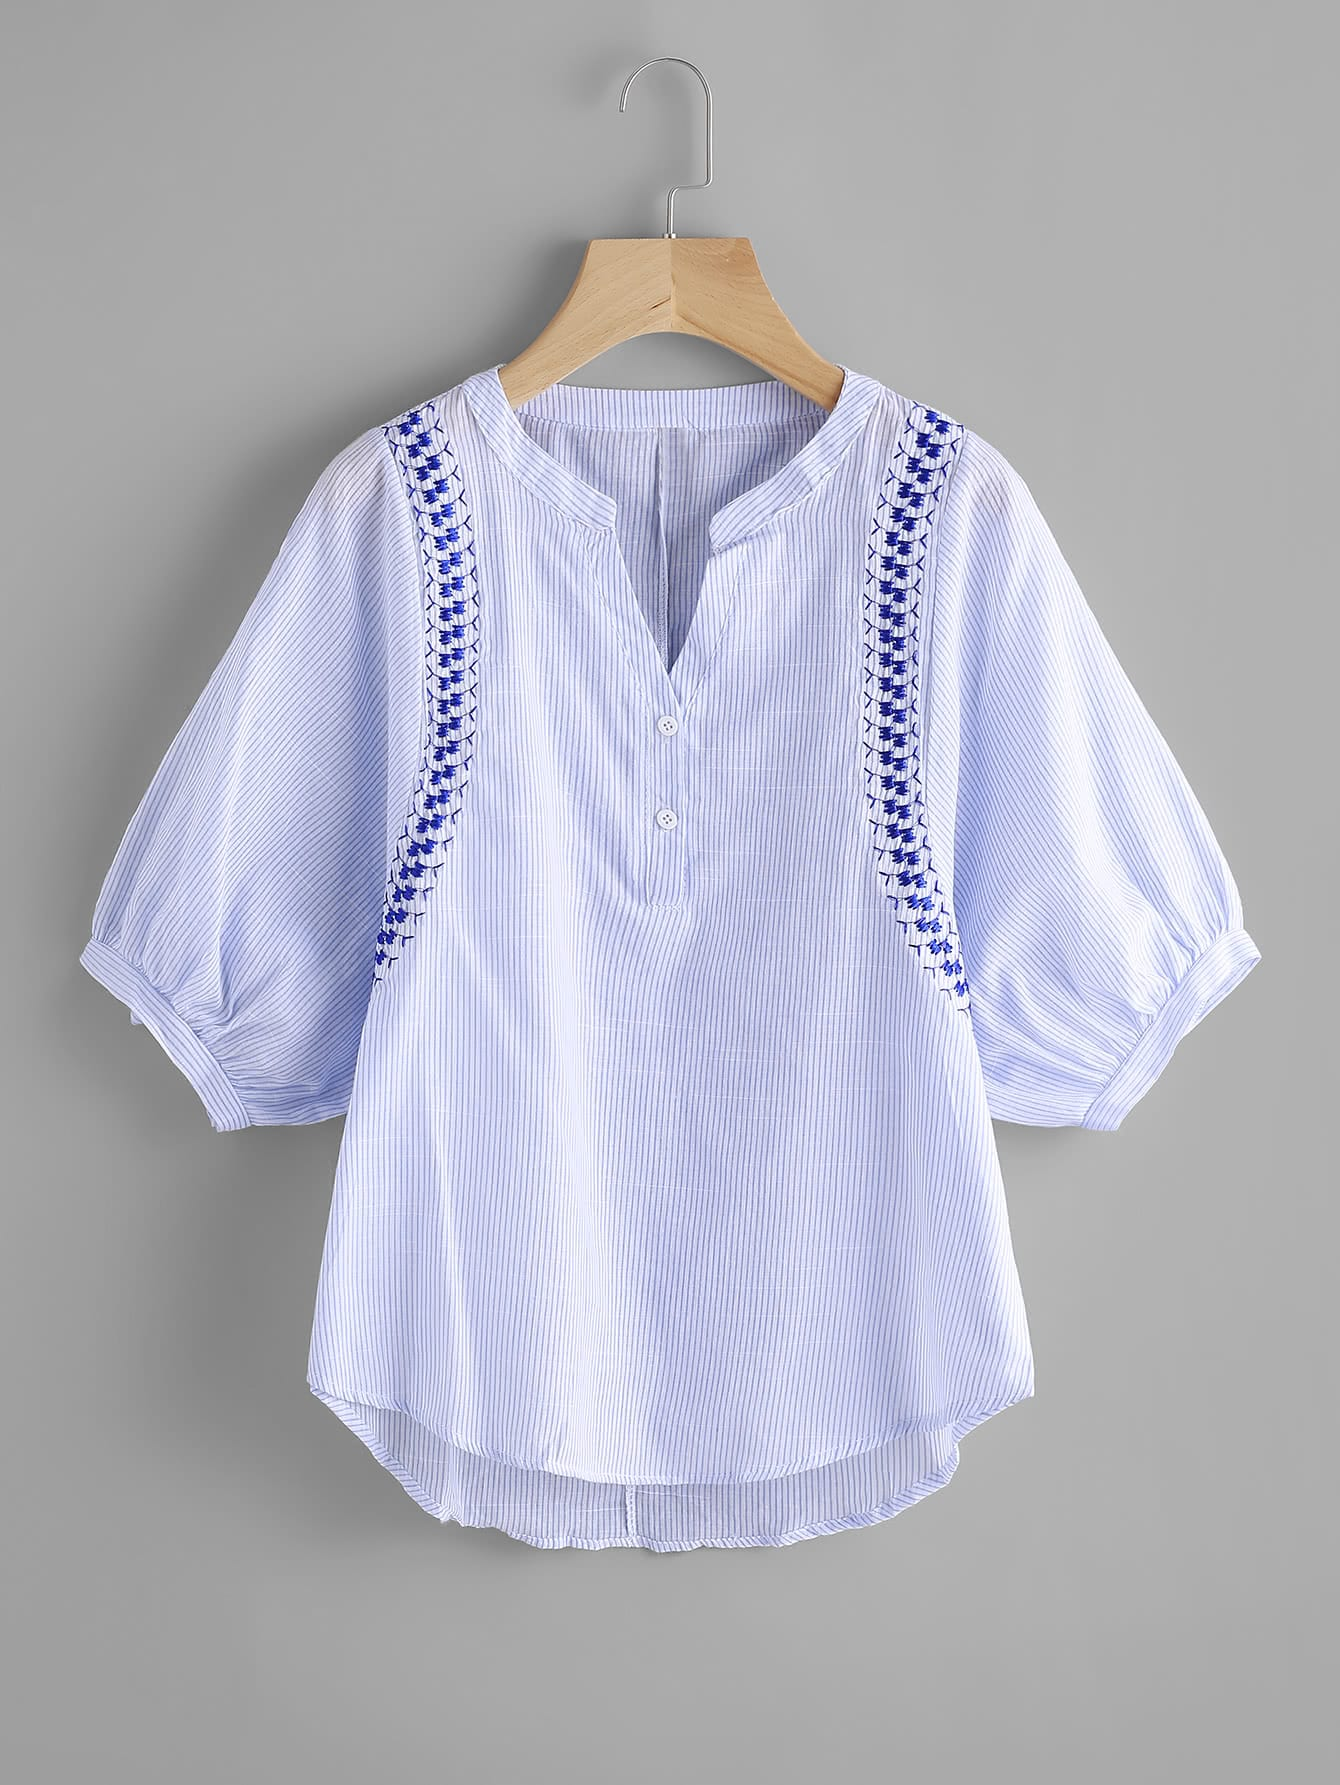 Vertical Striped Embroidery Lantern Sleeve Blouse blouse170704106